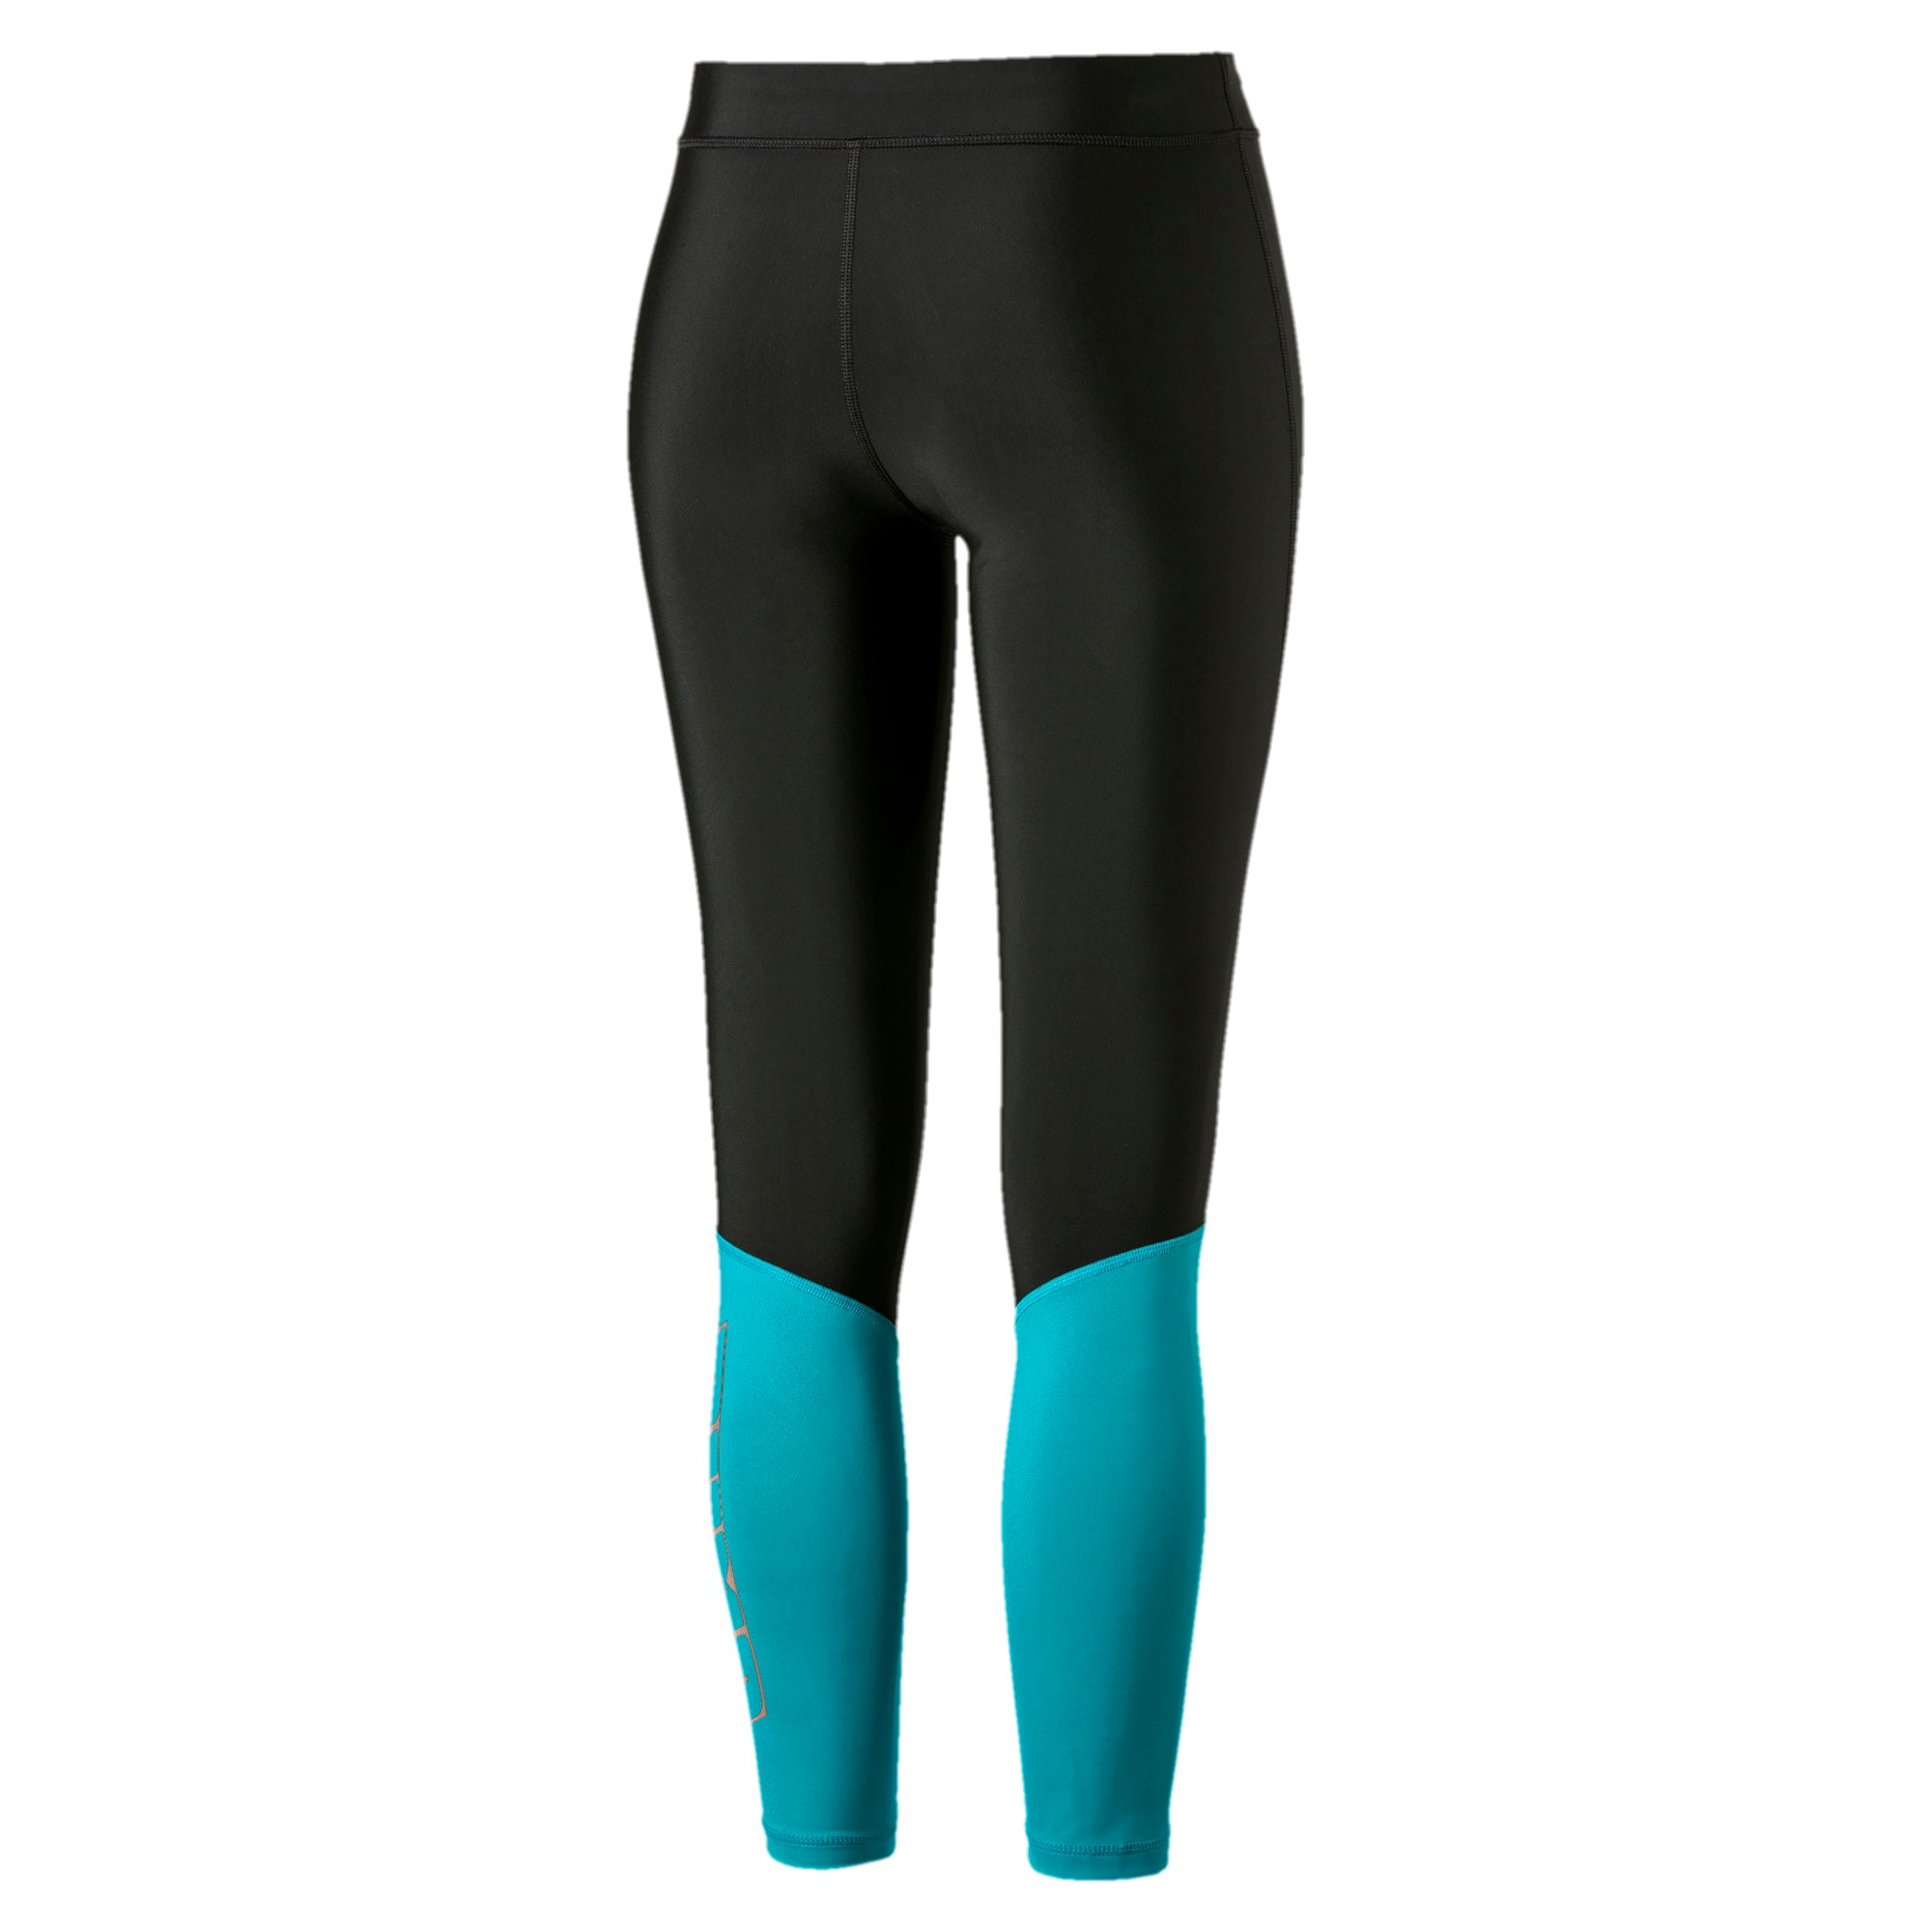 Thumbnail 3 of Aire Women's 7/8 Leggings, Puma Black-Caribbean Sea, medium